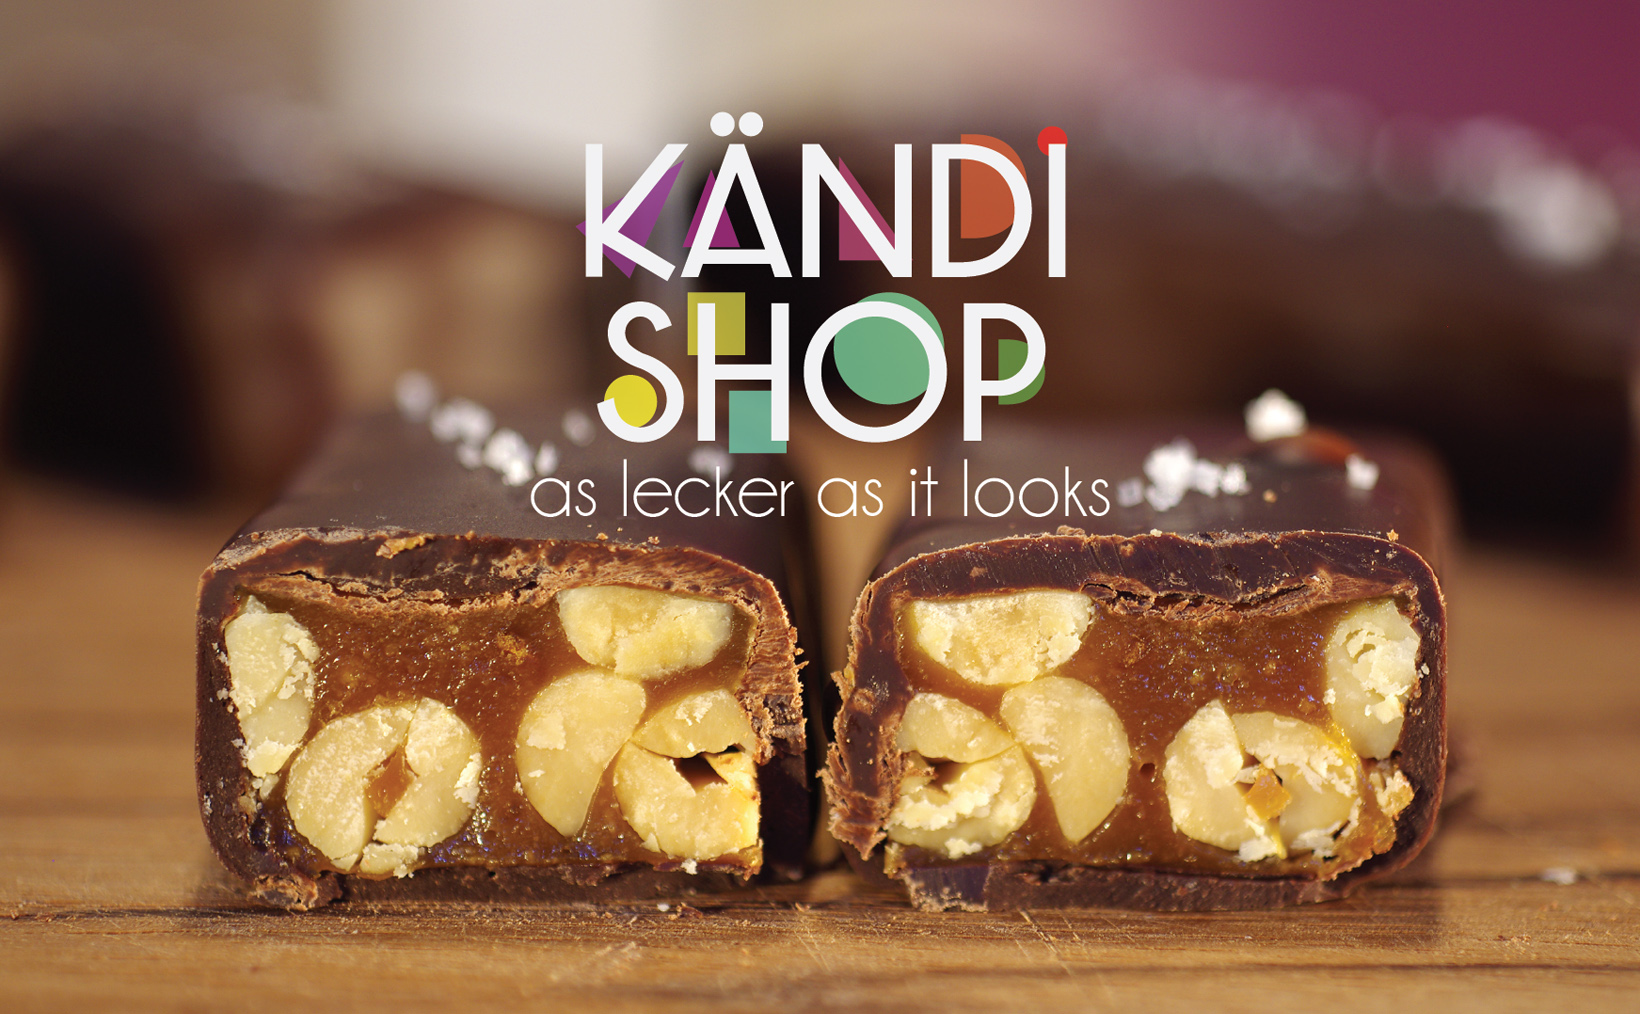 kaendi_header_logo_shop